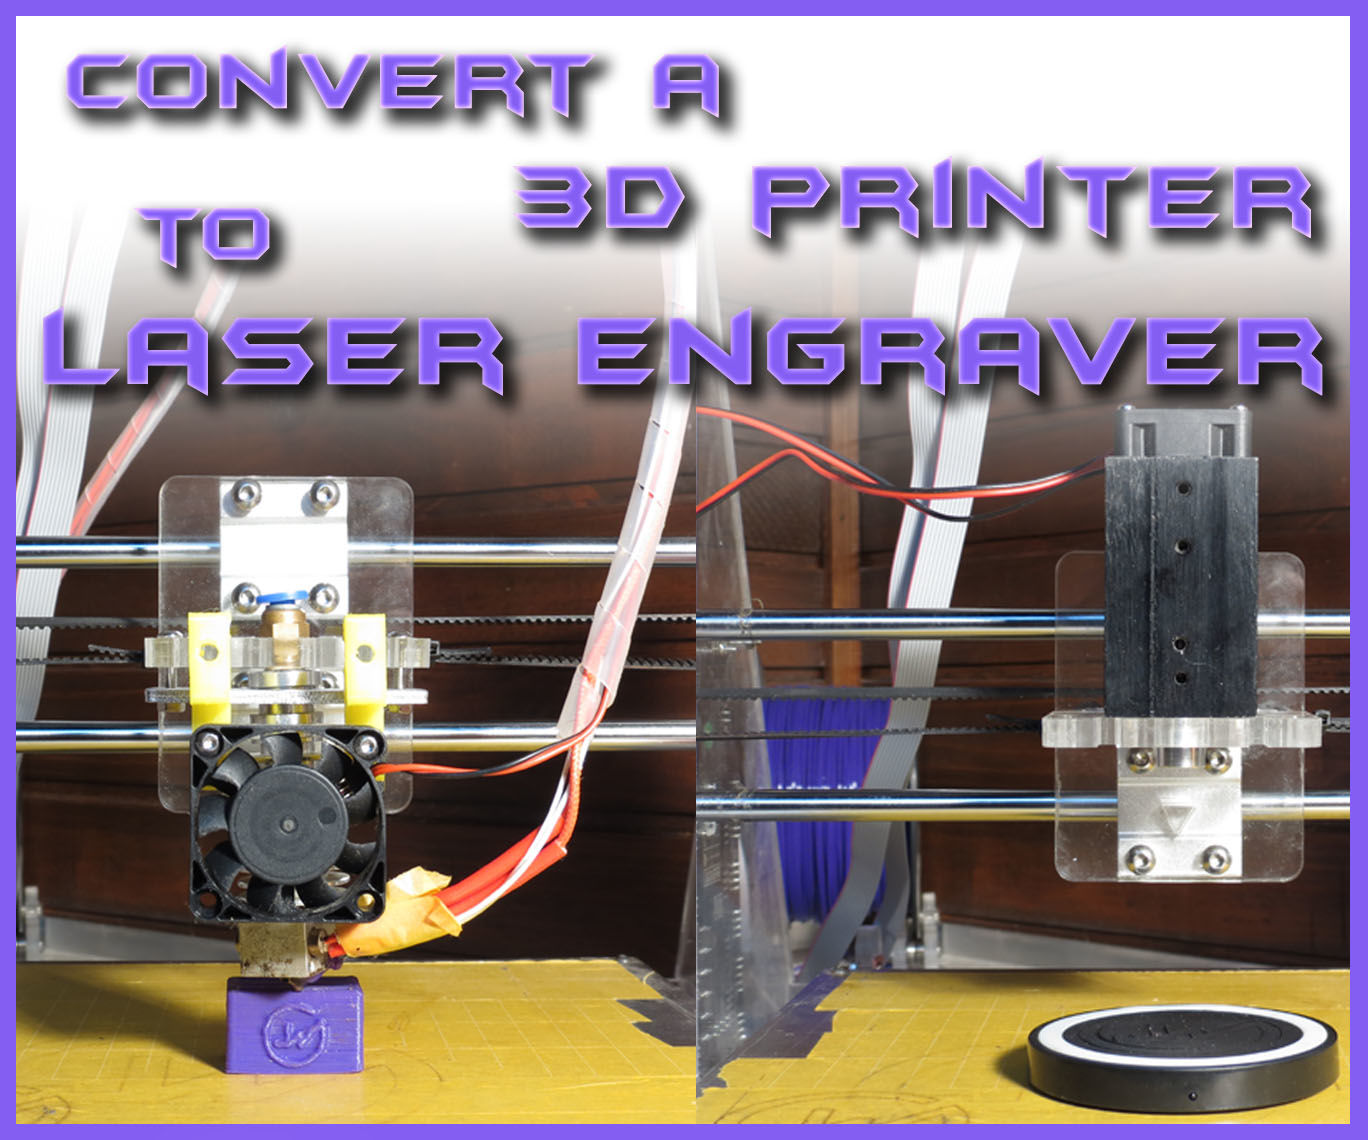 small resolution of convert a 3d printer to laser engraver under 40 5 steps with pictures